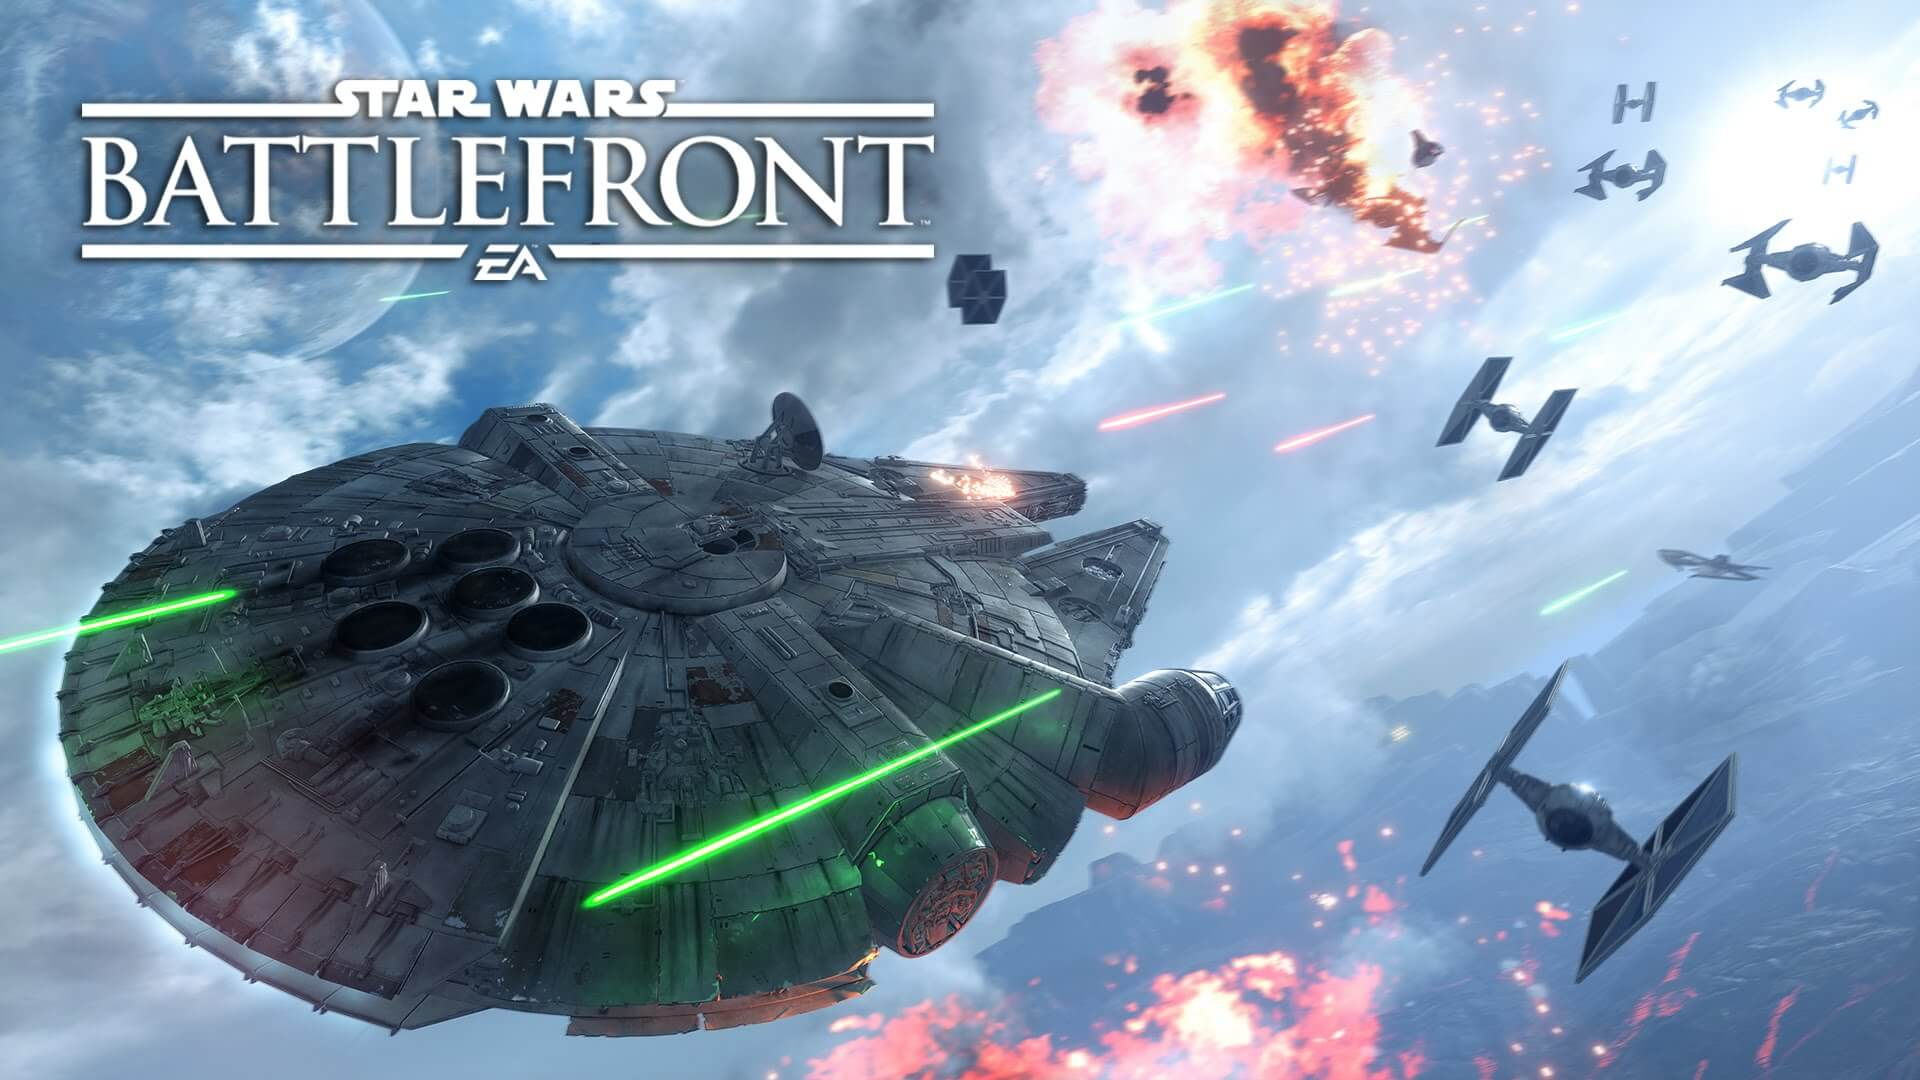 Star Wars Battlefront halcon milenario dogfight